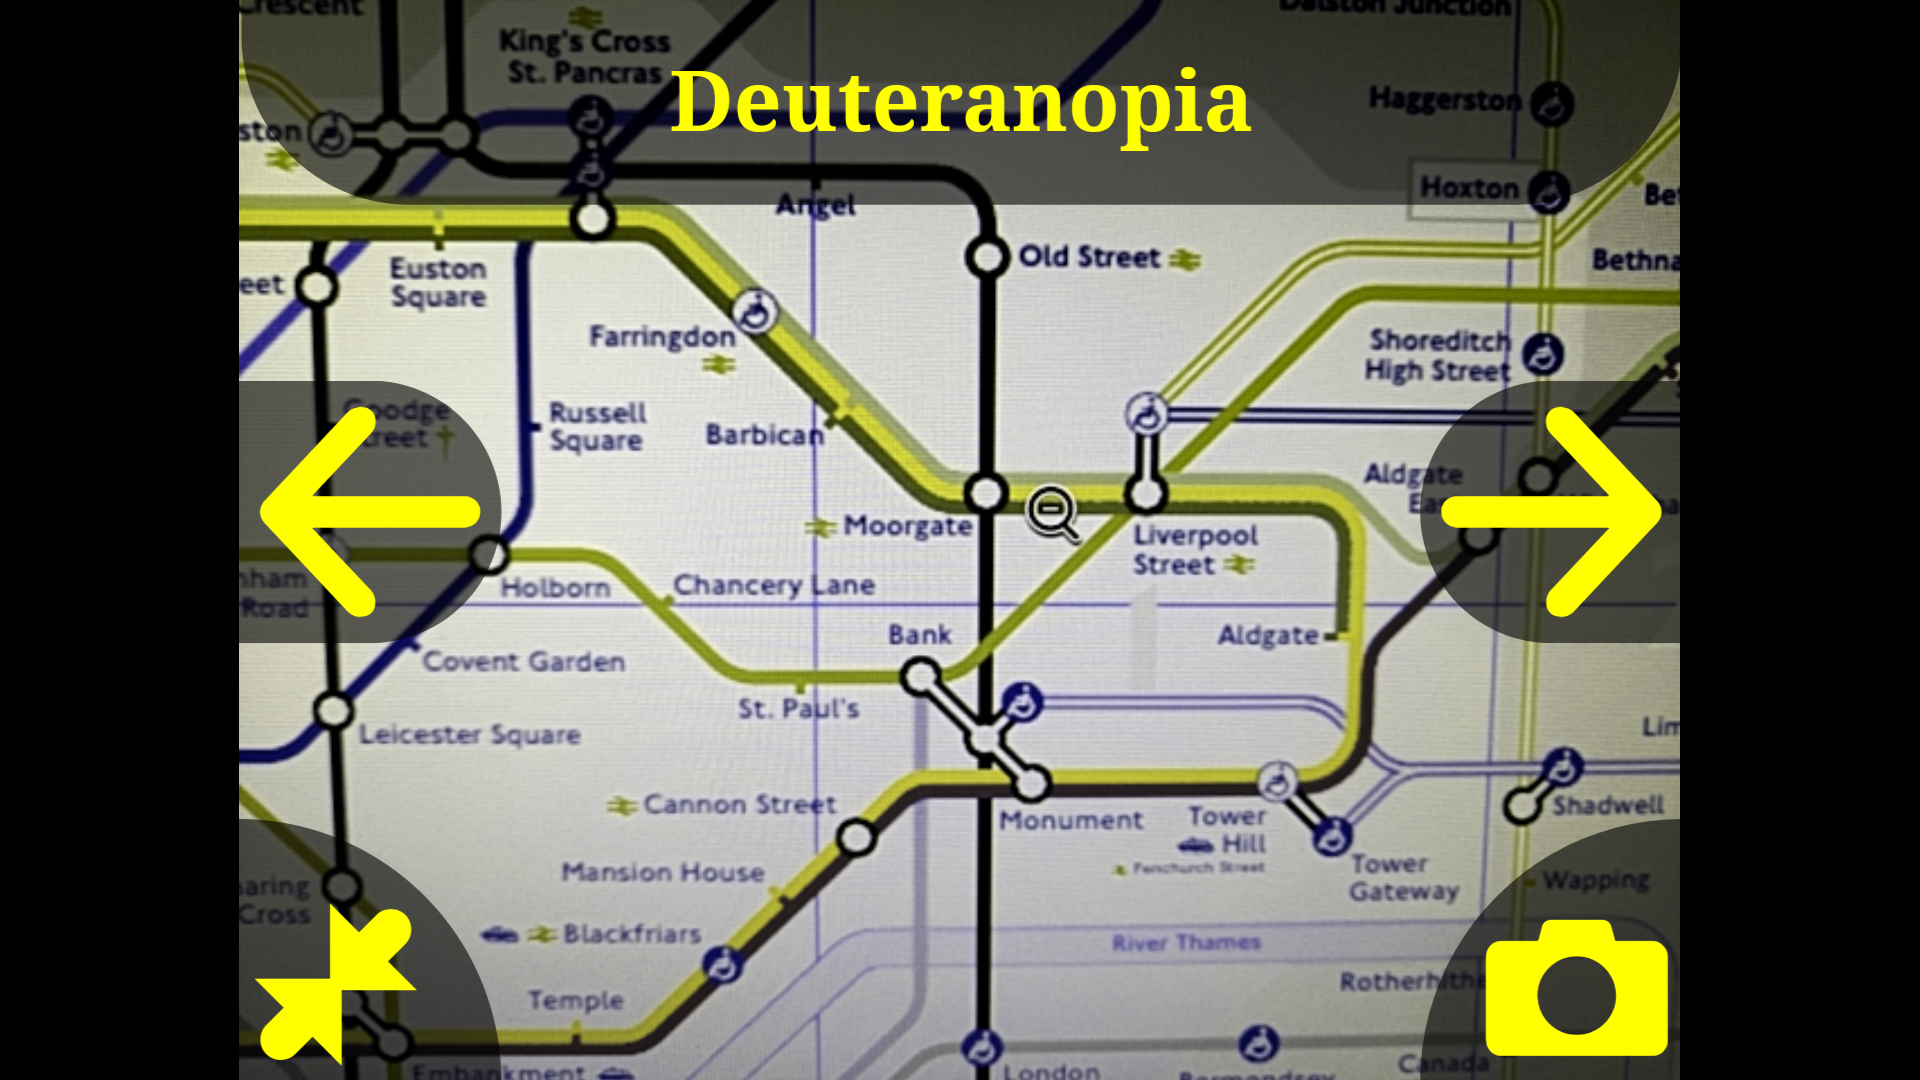 Viewing the London Underground map with the deuteranopia filter